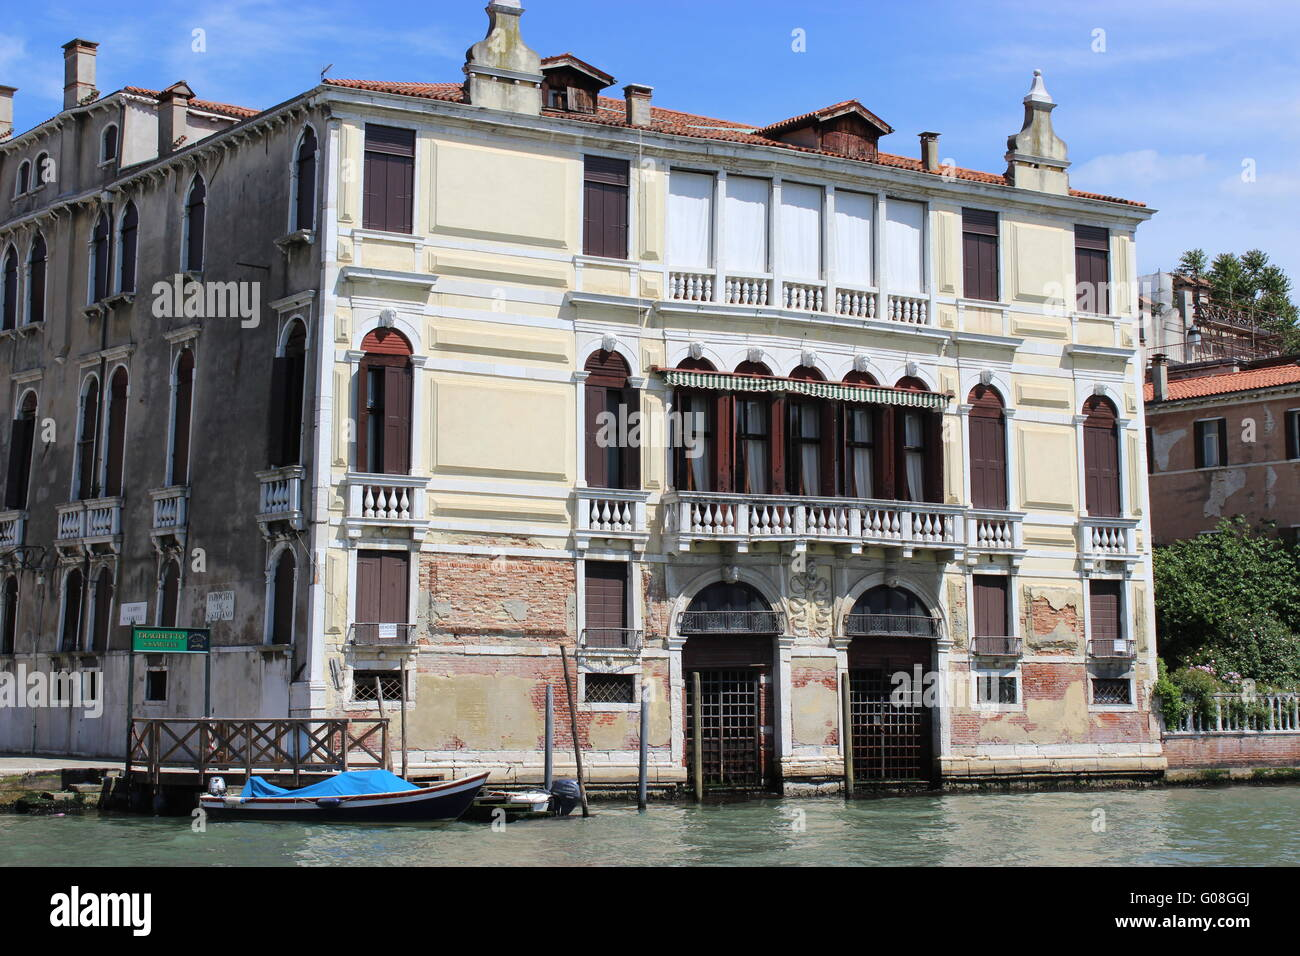 Palace on the Grand Canal Stock Photo